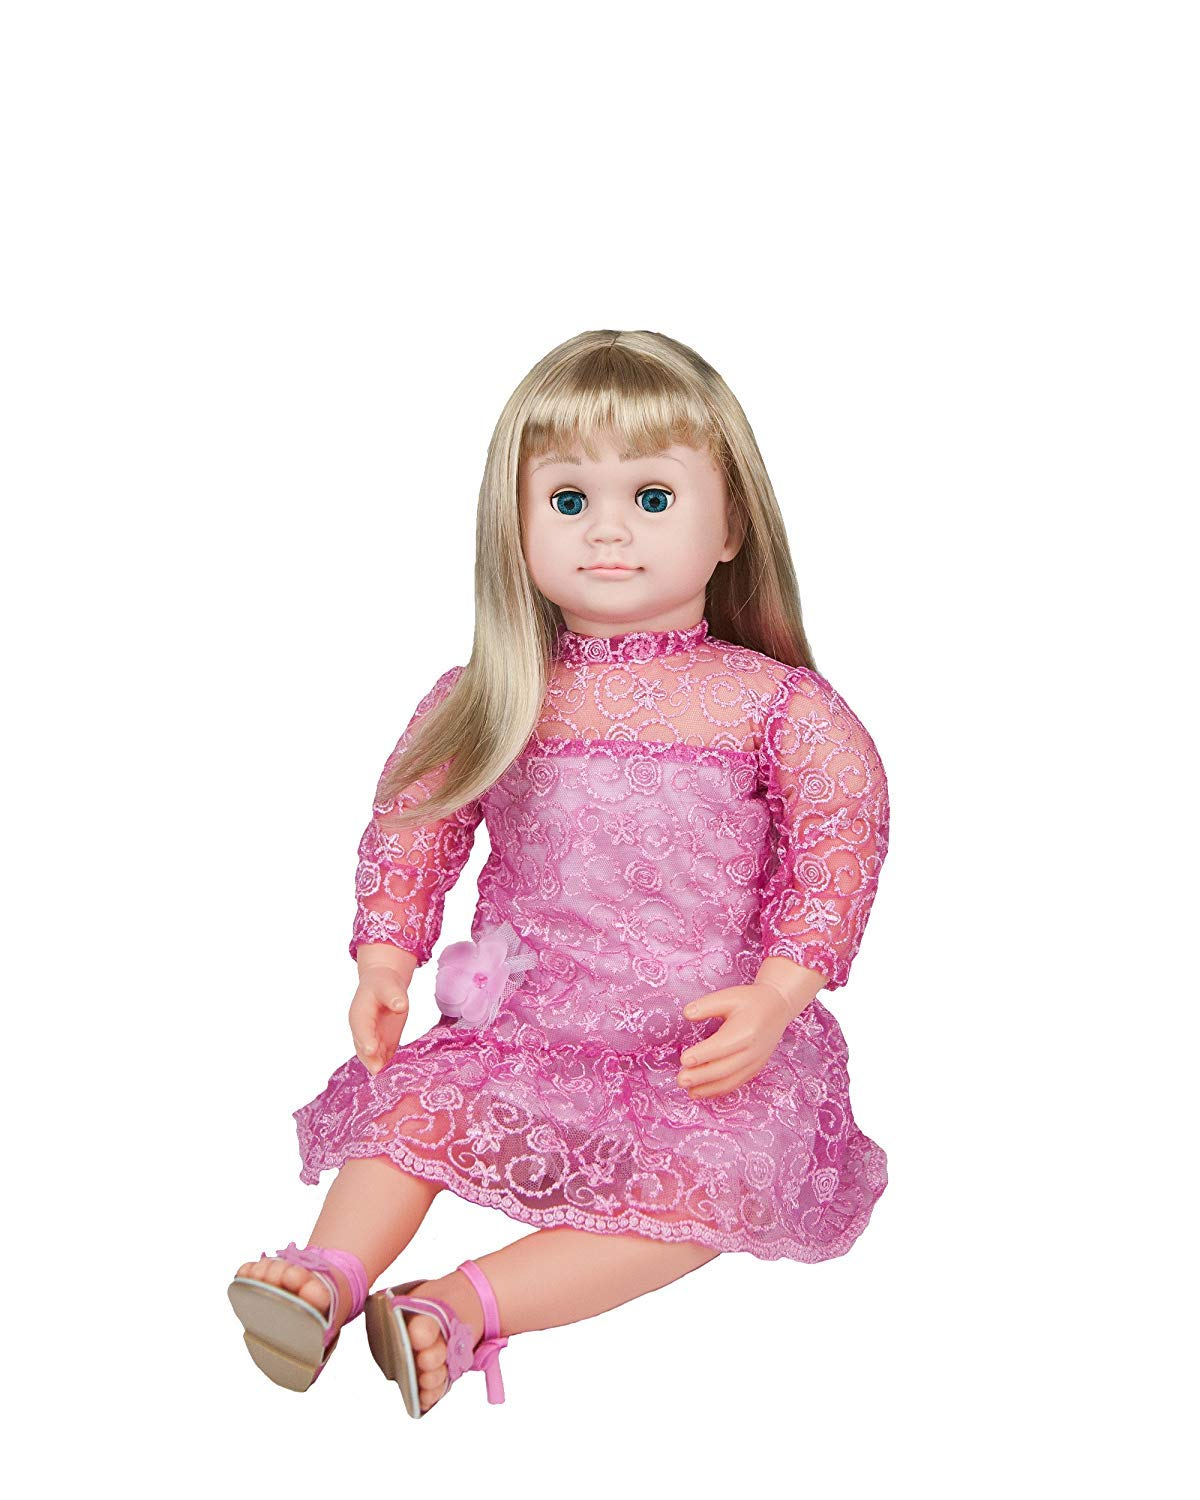 Ask Amy Talking Dolls for 3 Year Old Girls, Interactive Educational Toys for Preschoolers Kids Toddlers Age 3 and Up, Blond Doll Pink Dress